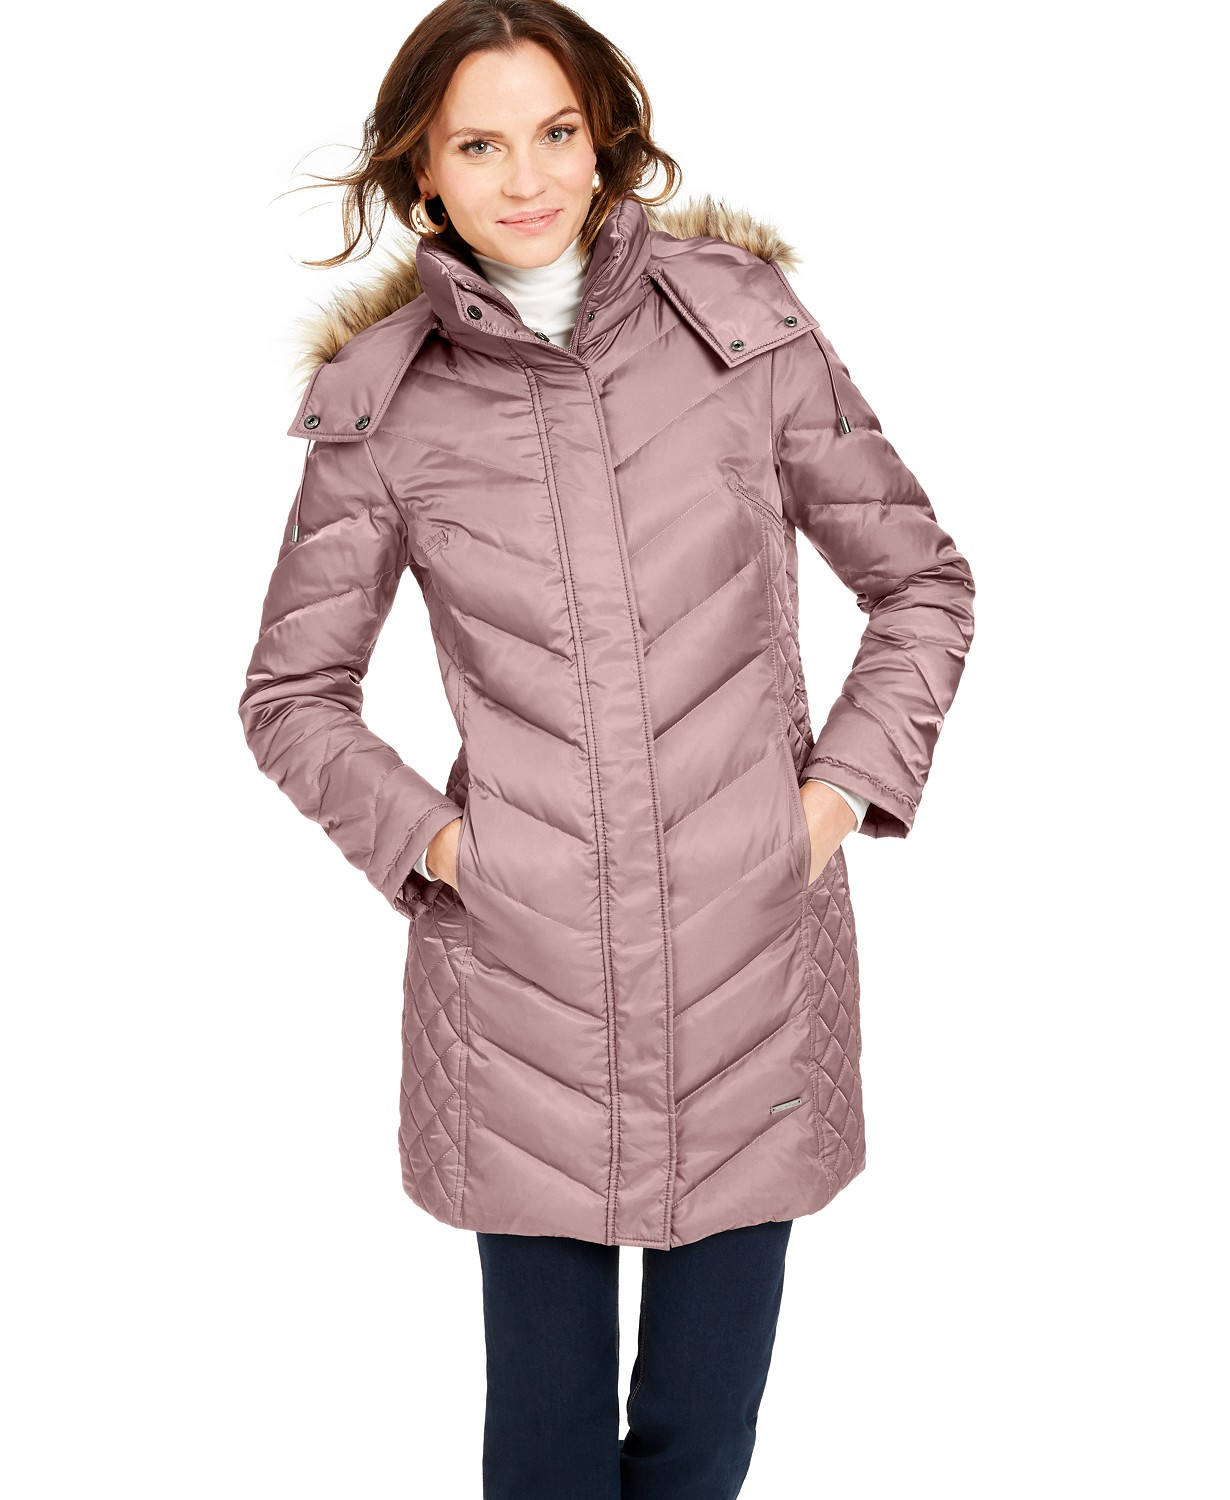 Women Coats Sale